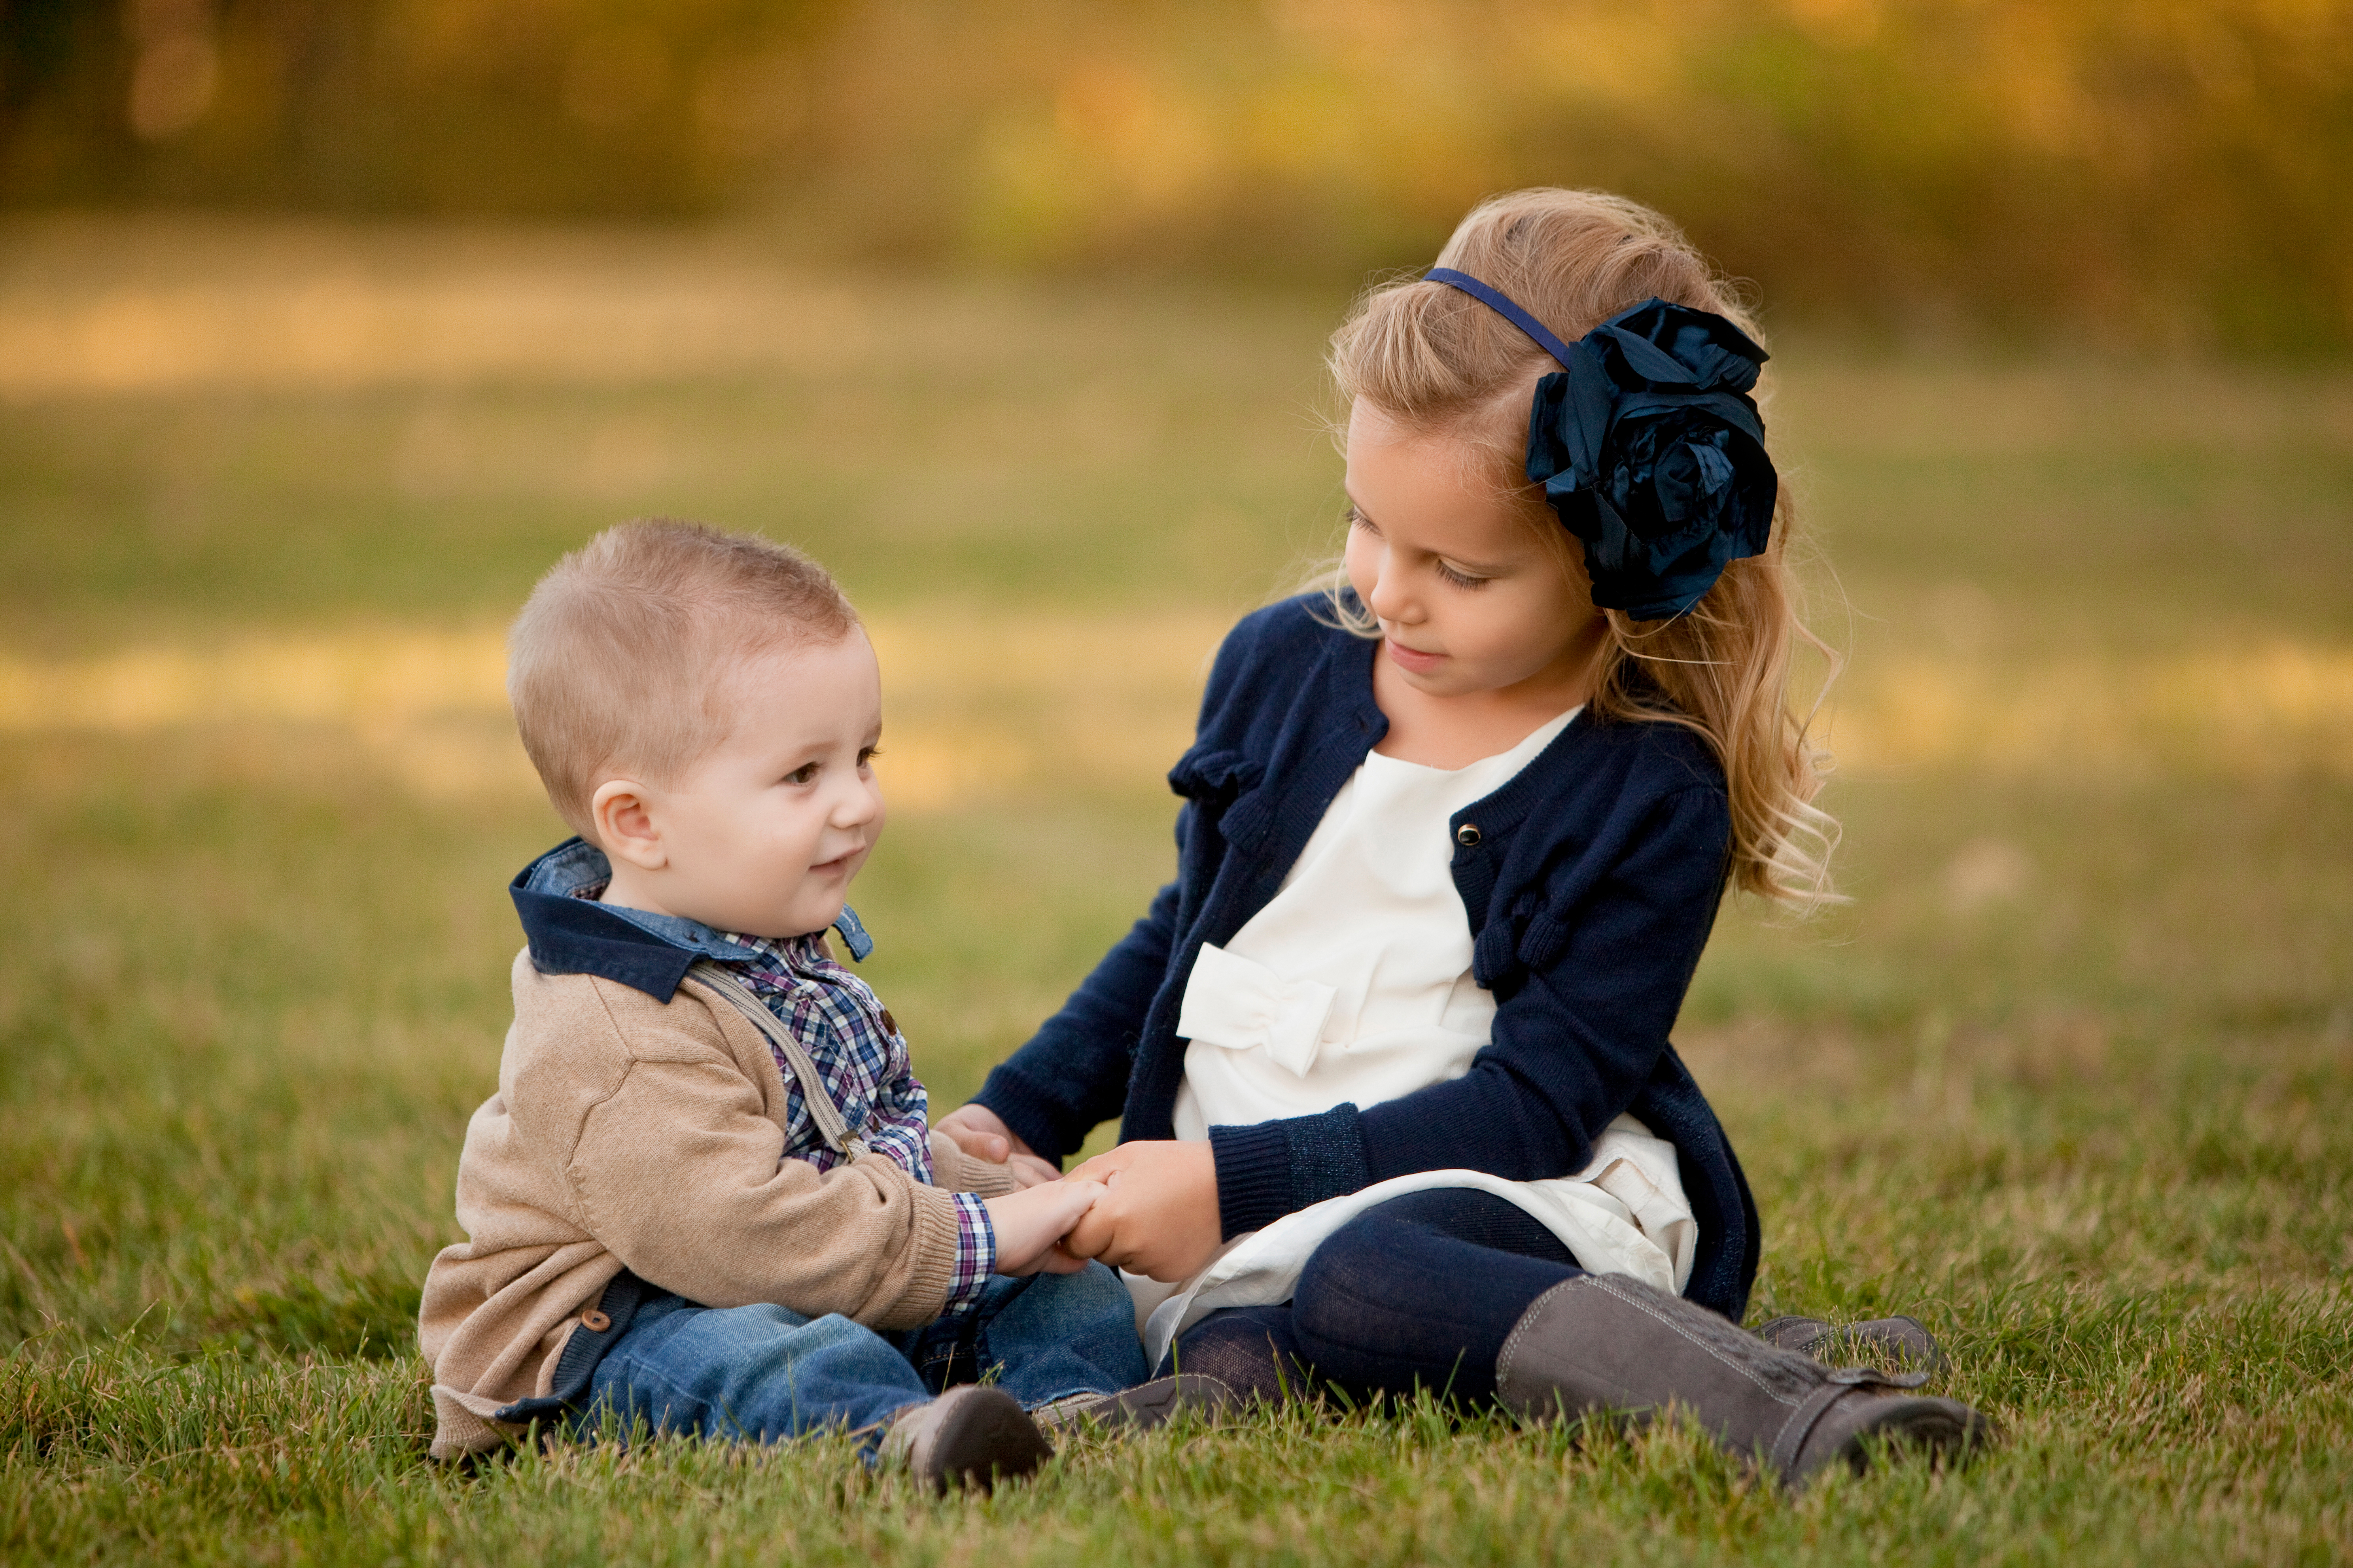 Two nicely dressed young children interact together while sitting on the grass